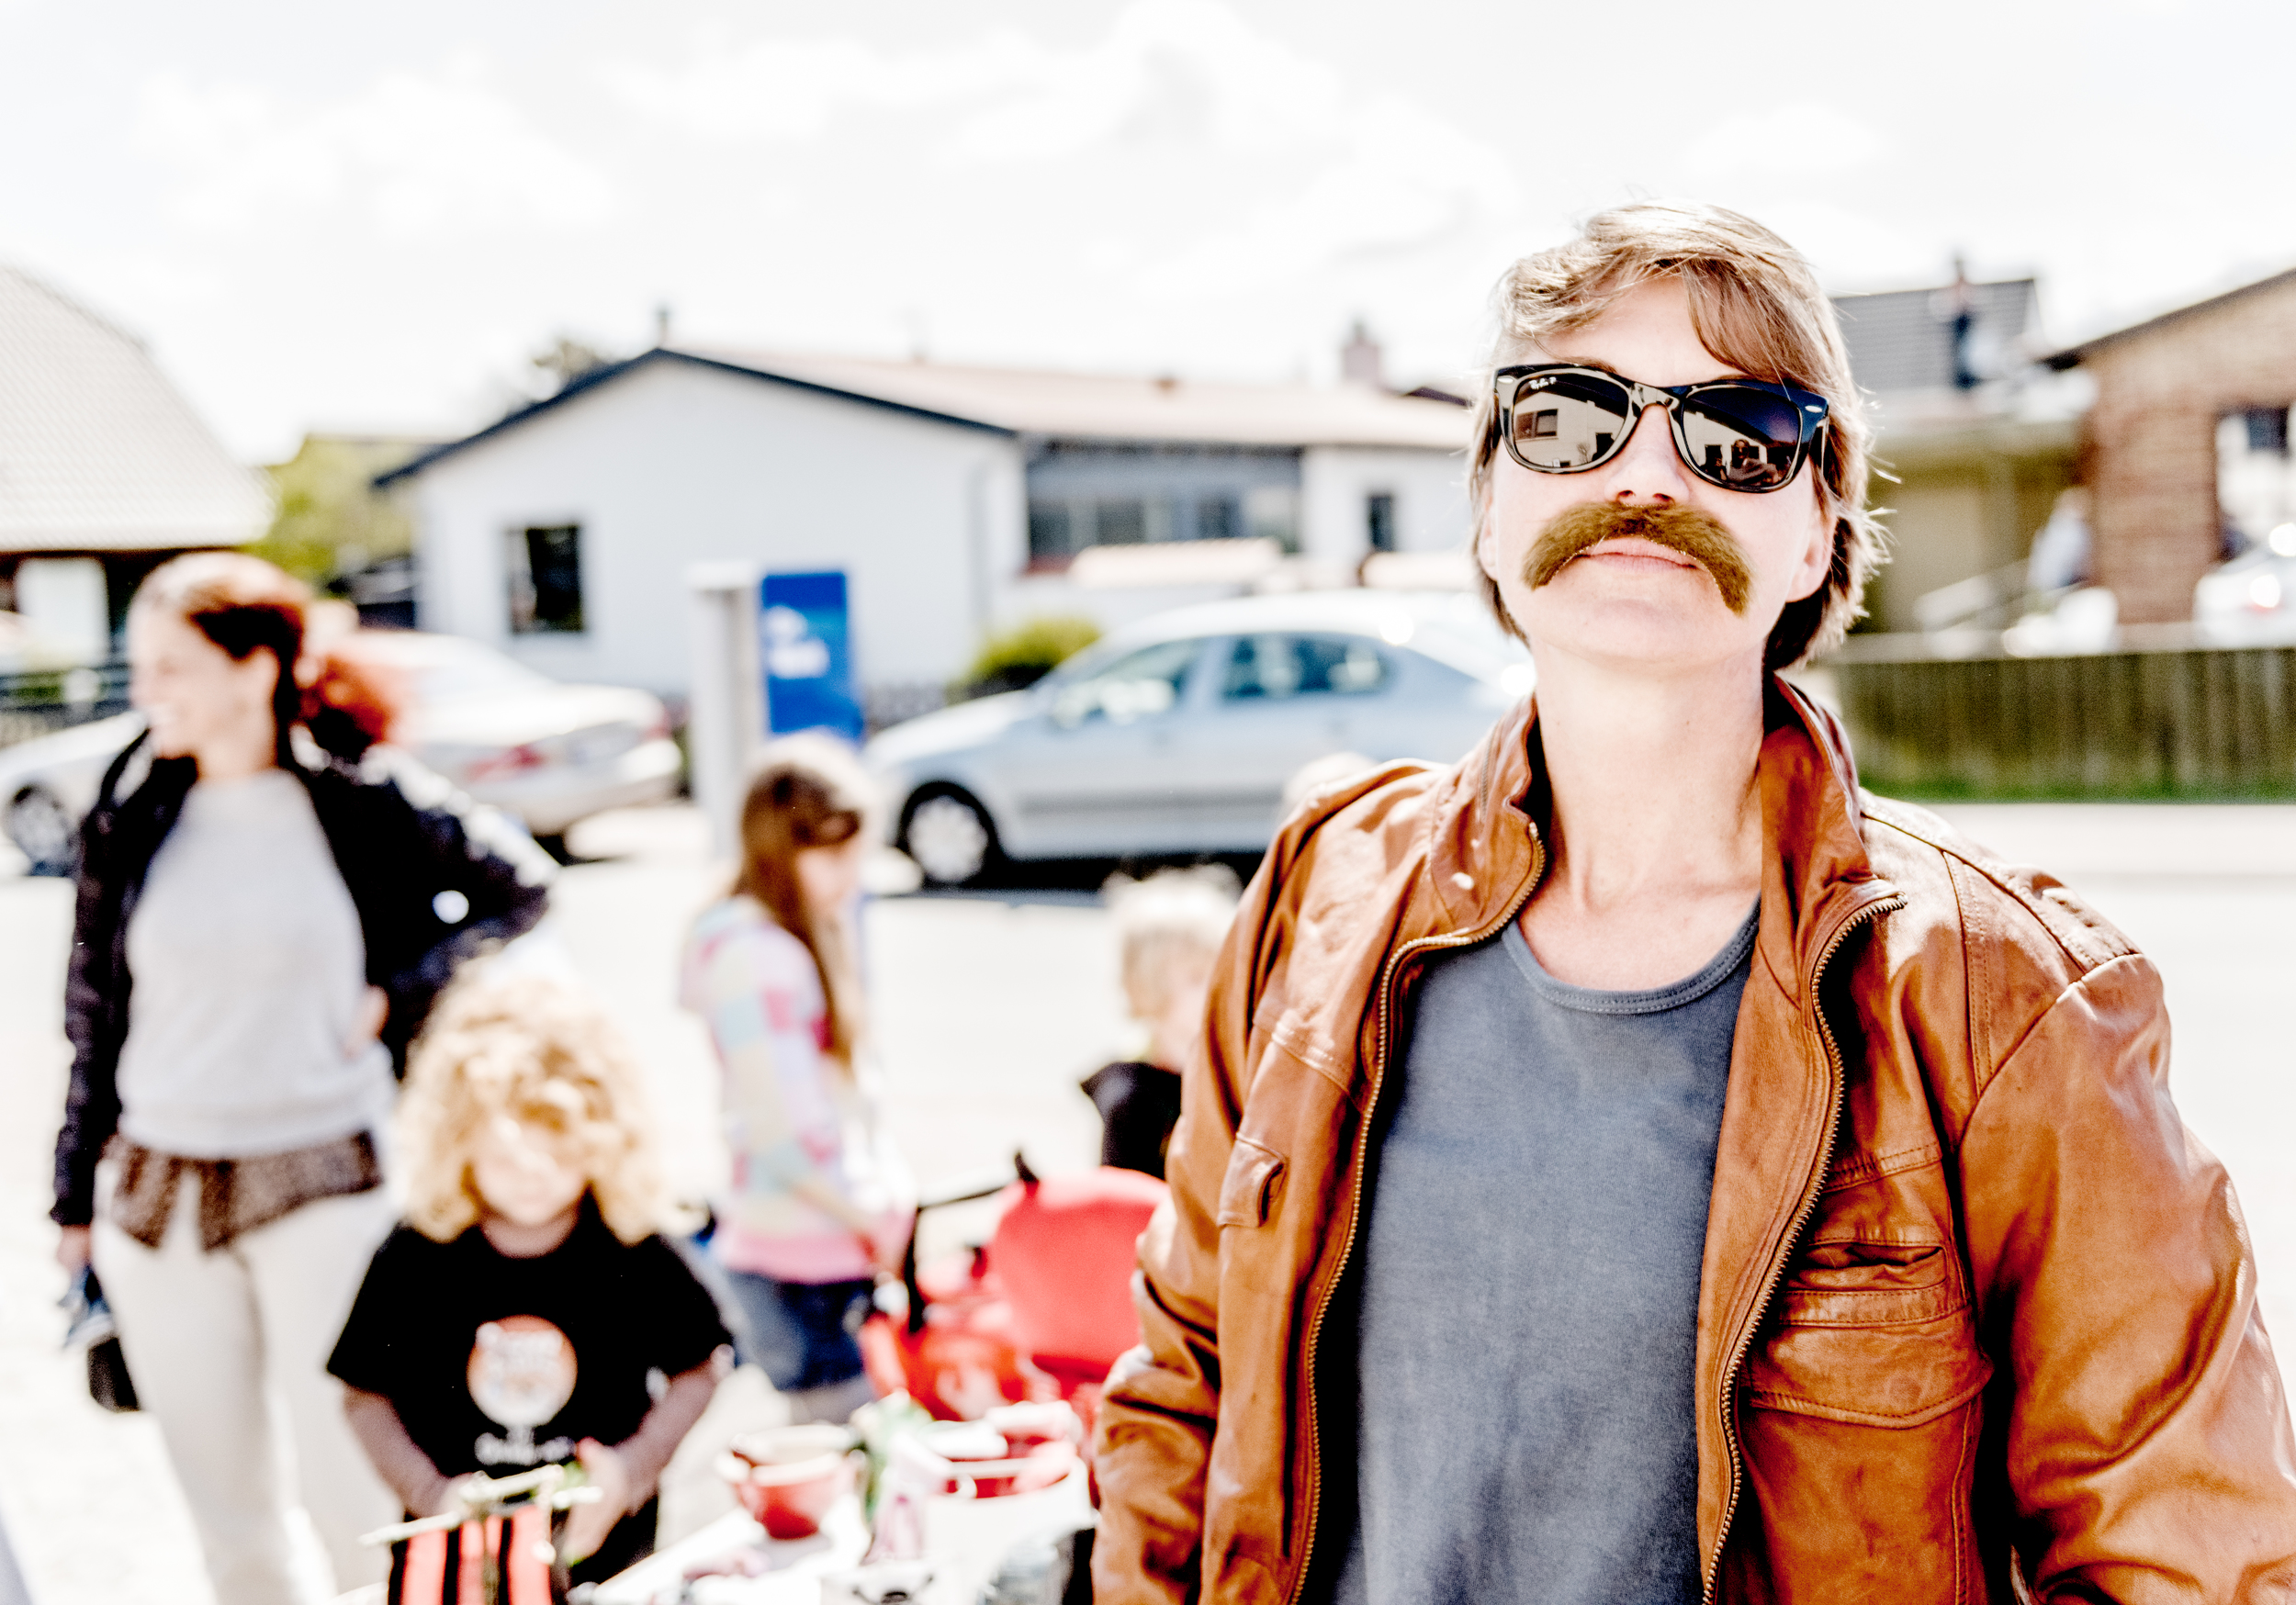 Rumour has it that Tina works for the Danish secret service. For this event, she was a taxi driver and took potential troublemakers away.